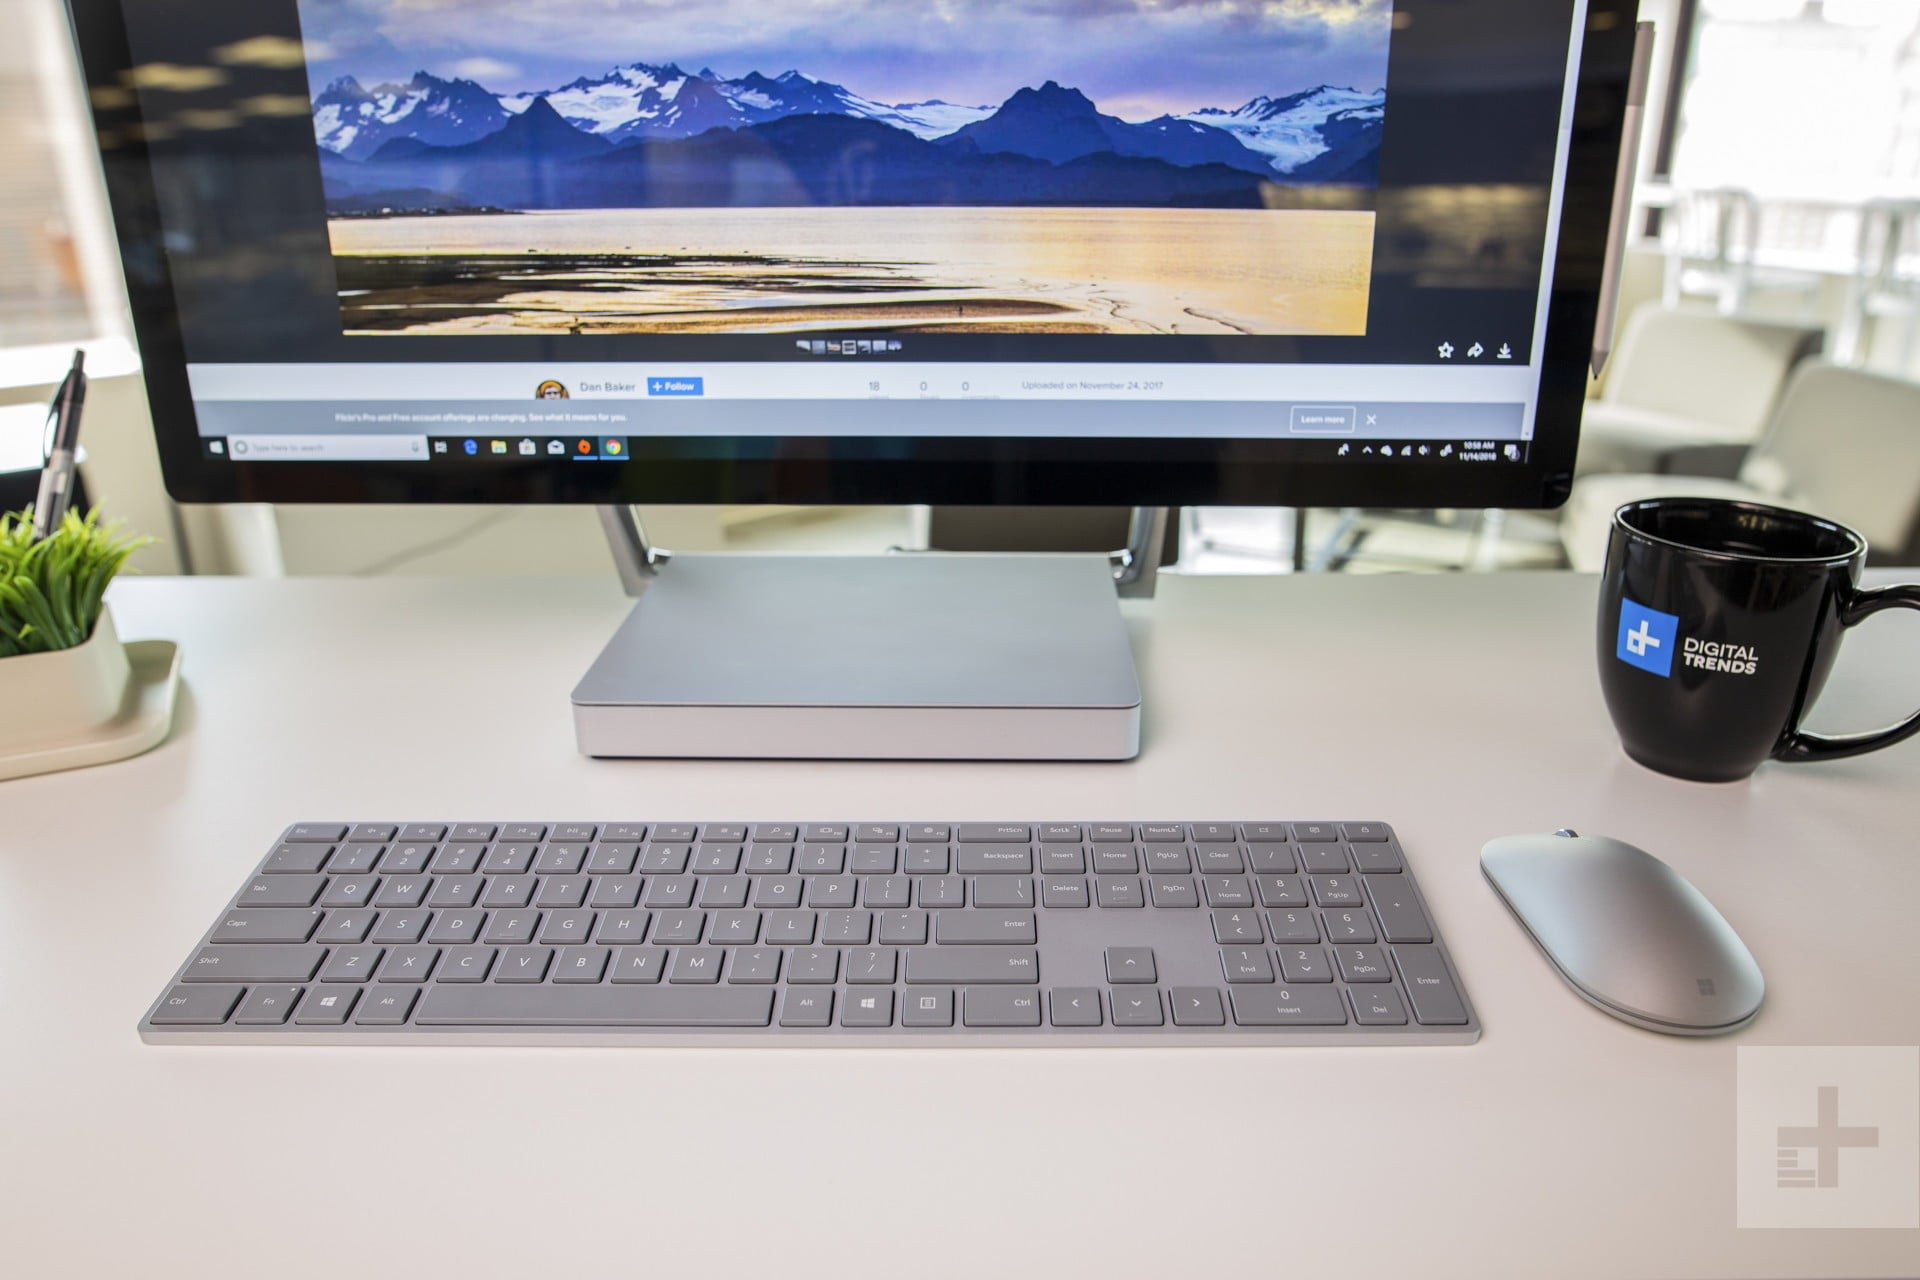 Best Desktop Computer For Small Business 2019 The Best All in One Computers for 2019 | Digital Trends